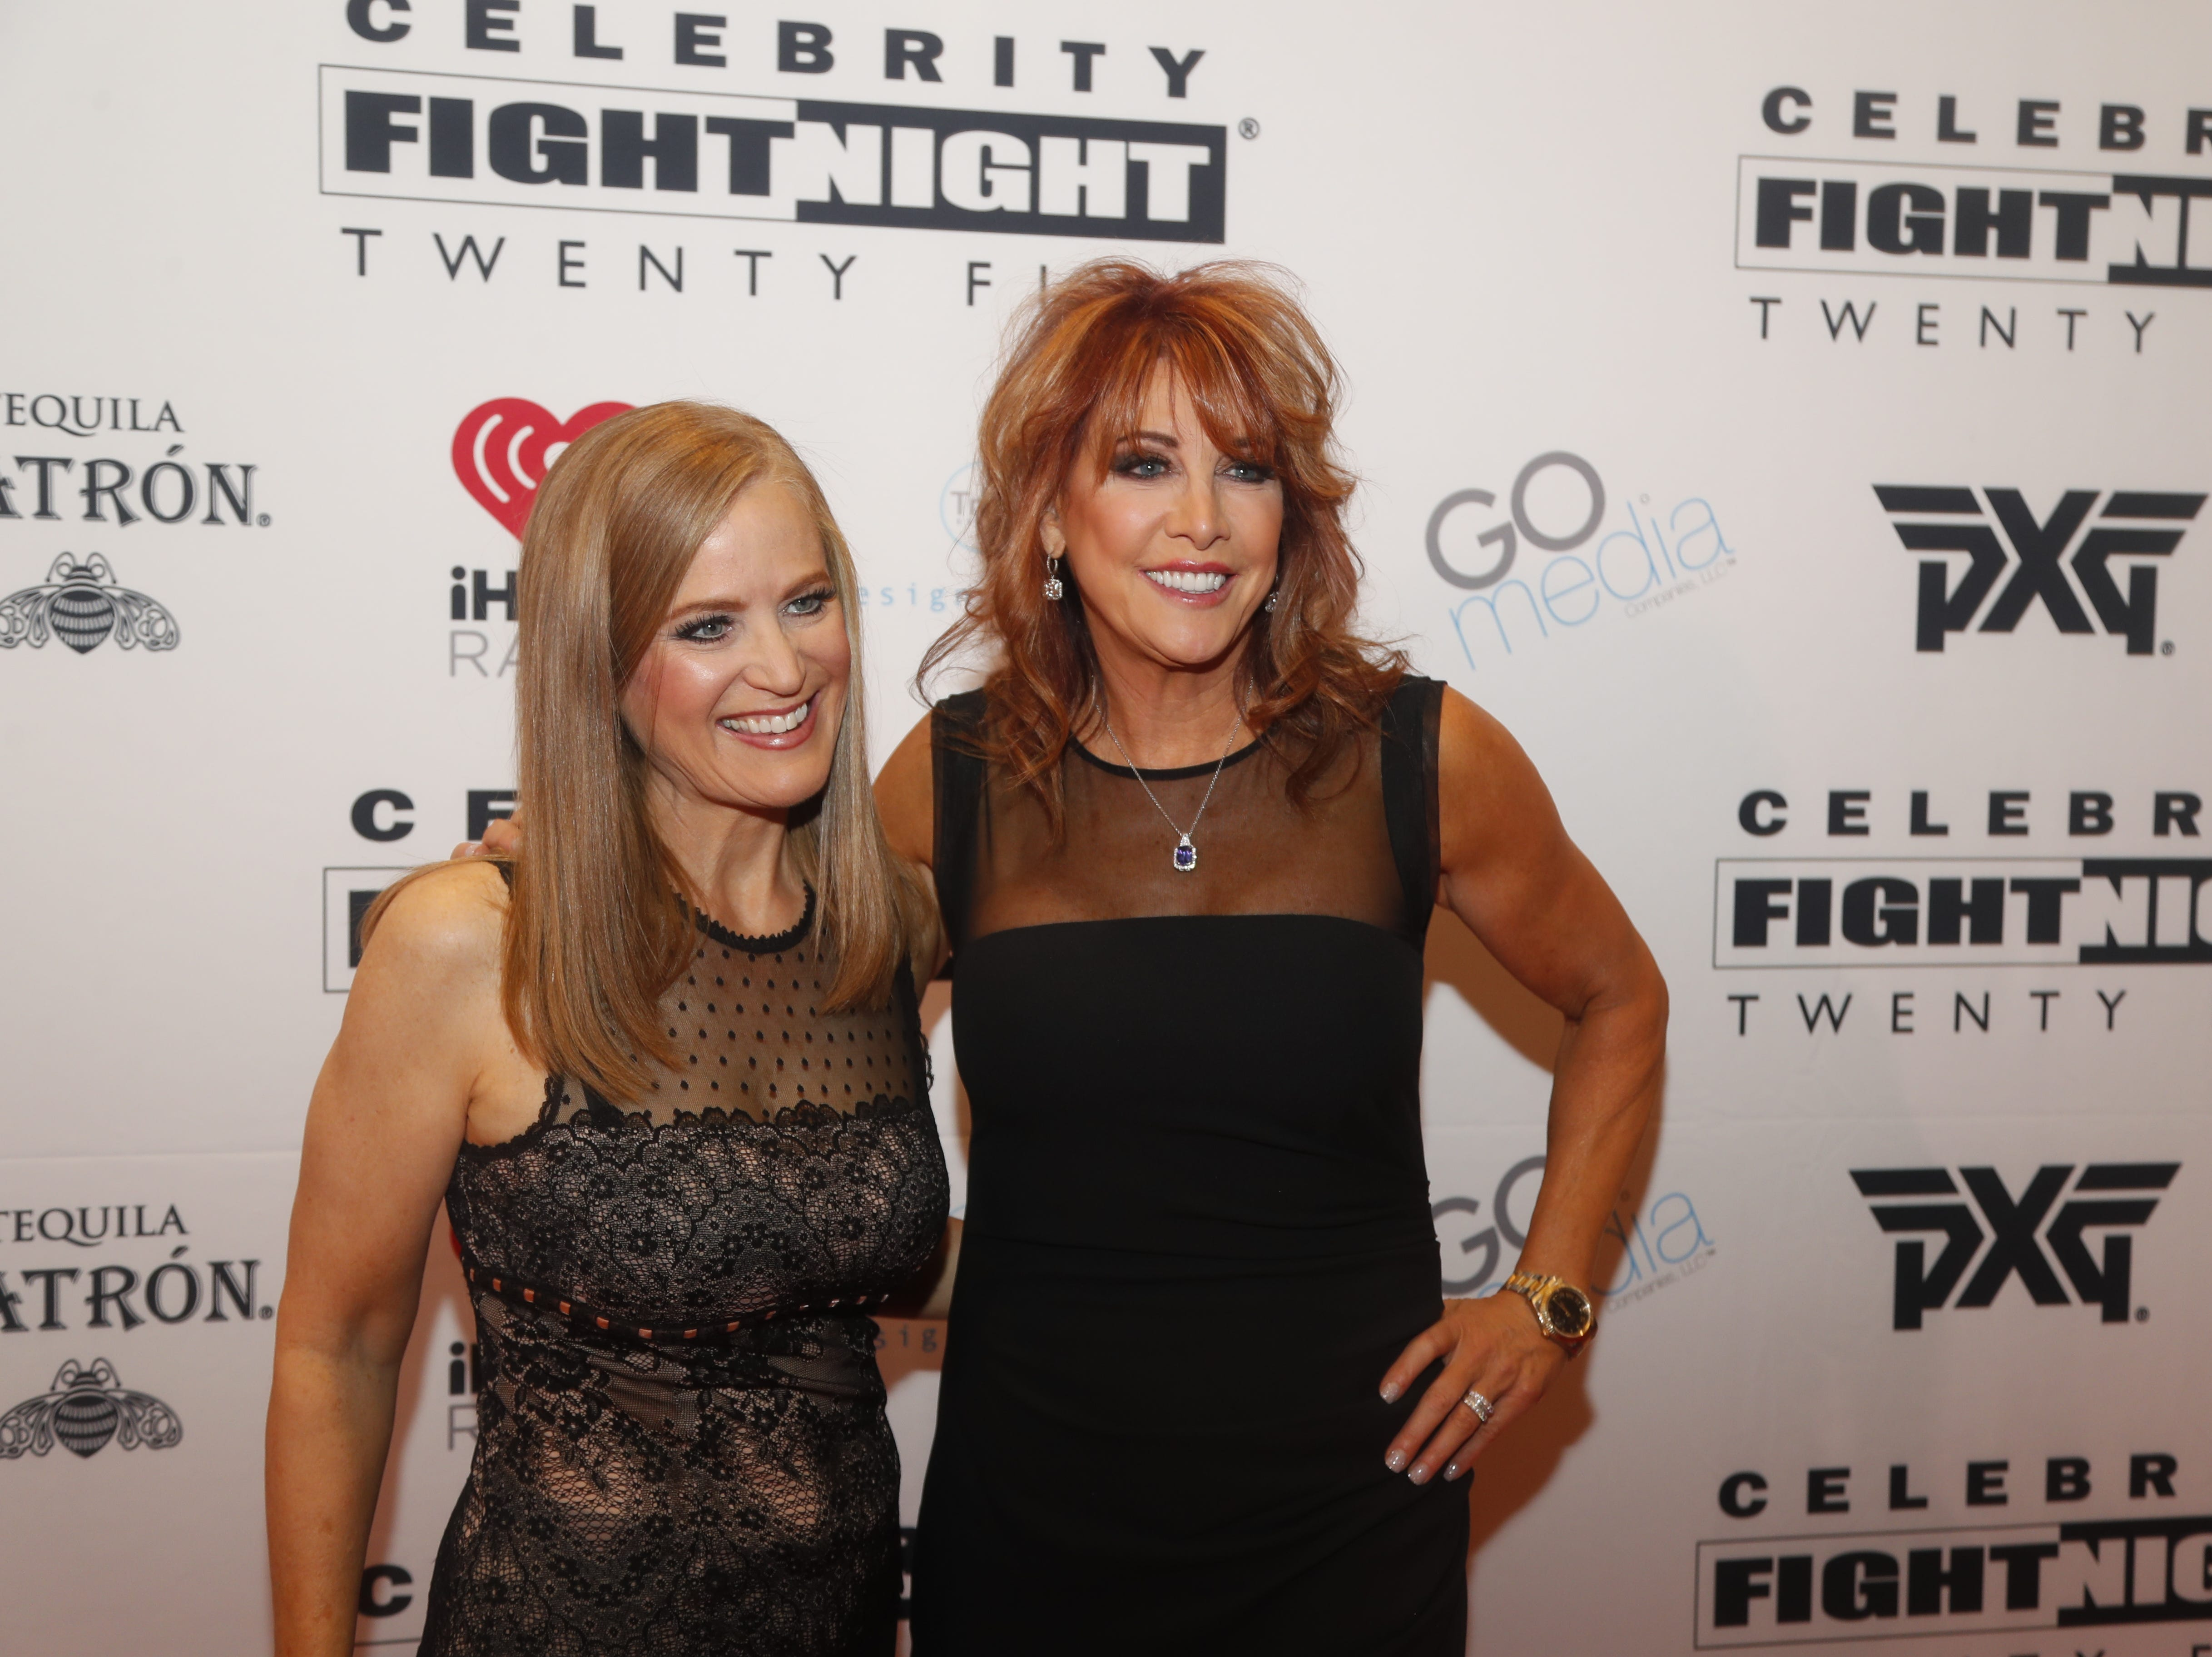 Nancy Lieberman (right) poses for pictures during the Celebrity Fight Night red carpet in Scottsdale, Ariz., on March 23, 2019.